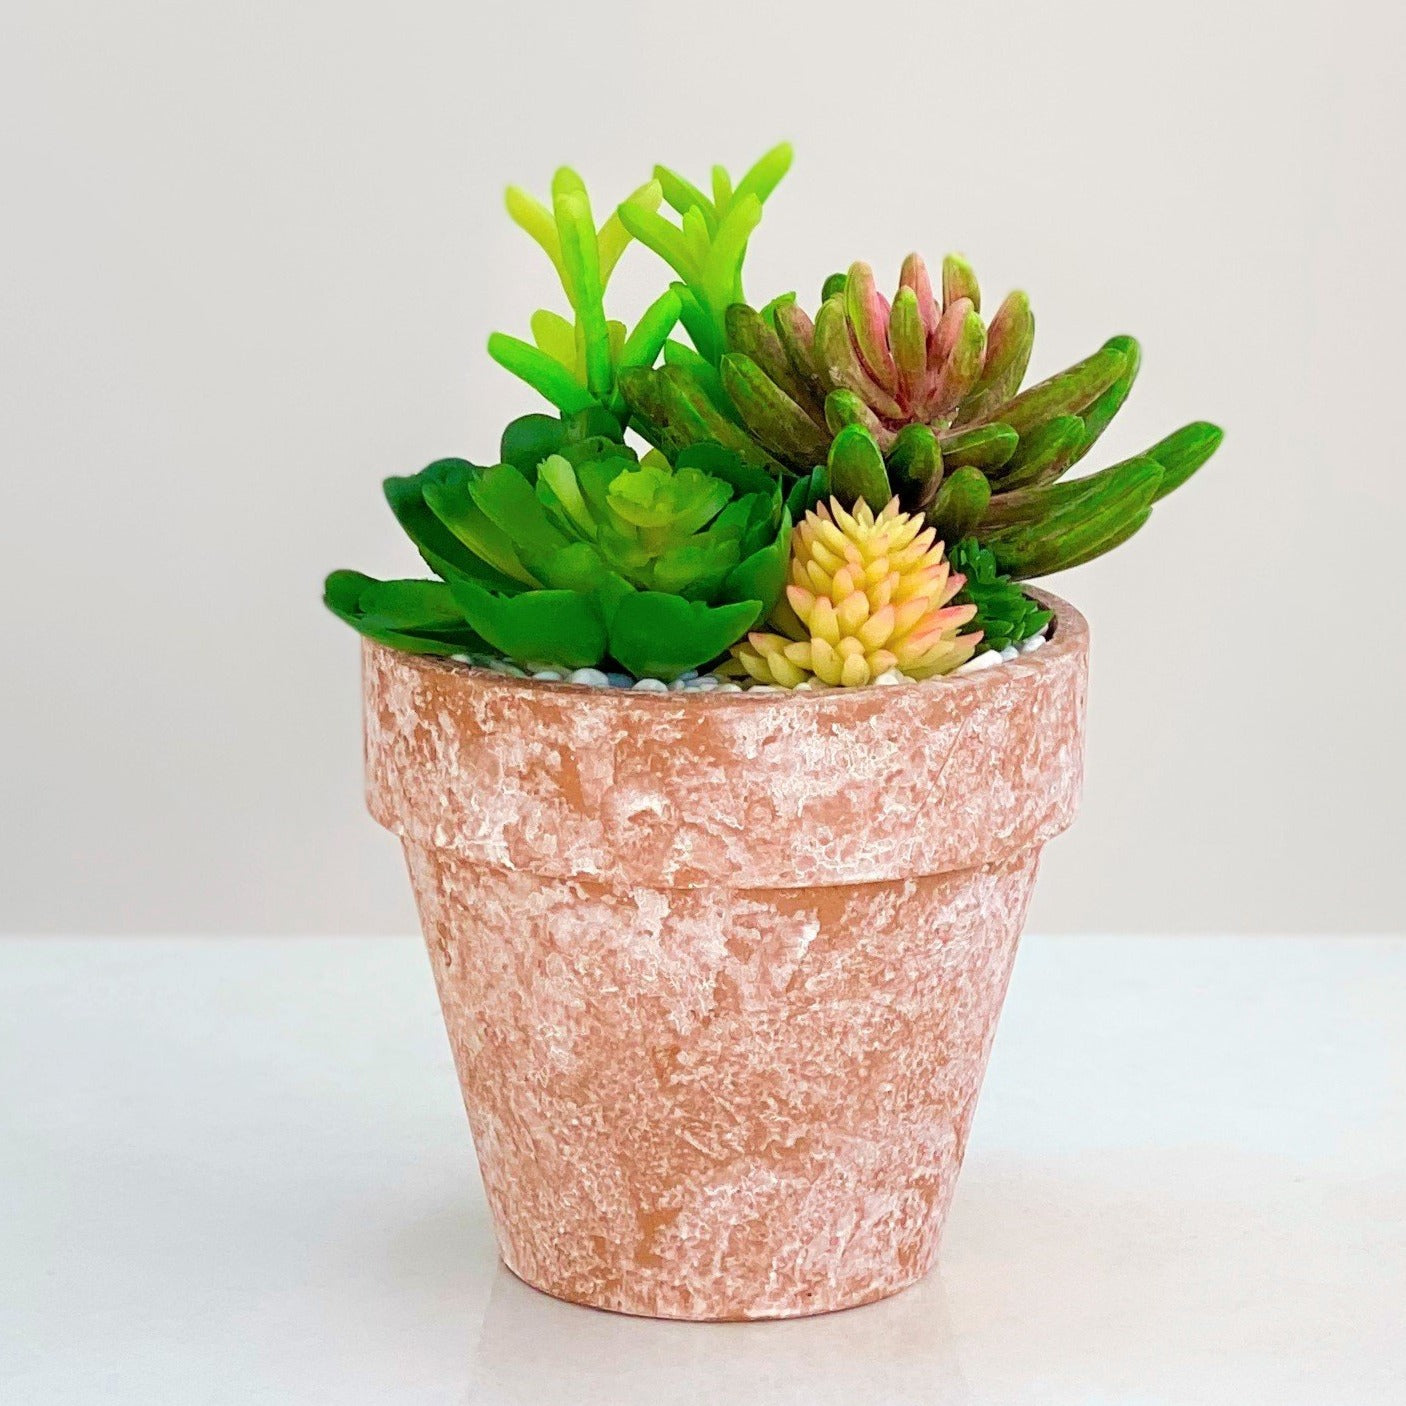 Succulent Arrangement in a Round Mud Pot